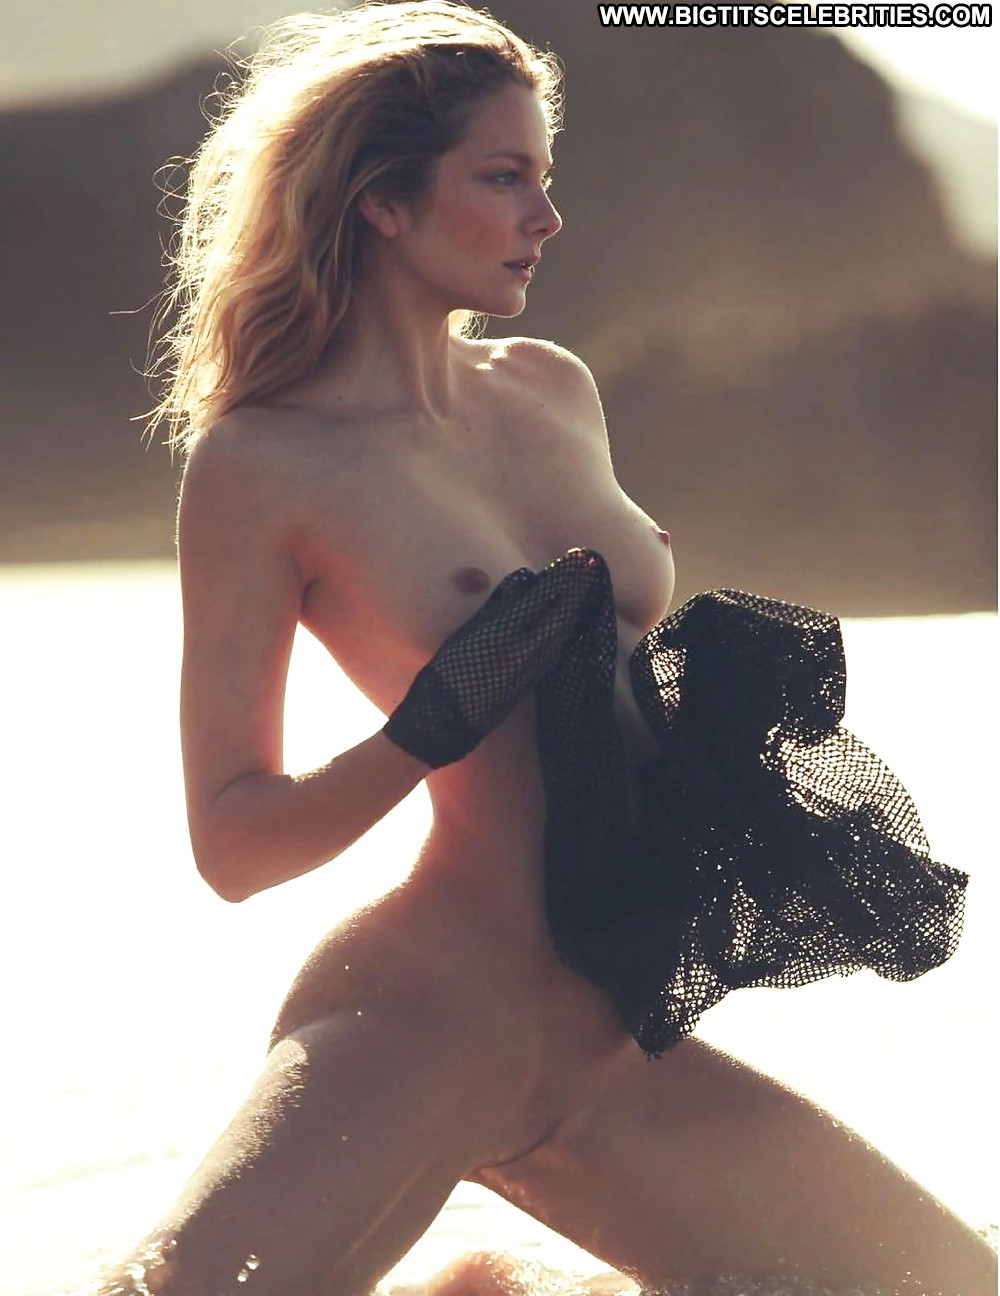 Kate Moss No Source Celebrity Beautiful Babe Posing Hot -1139